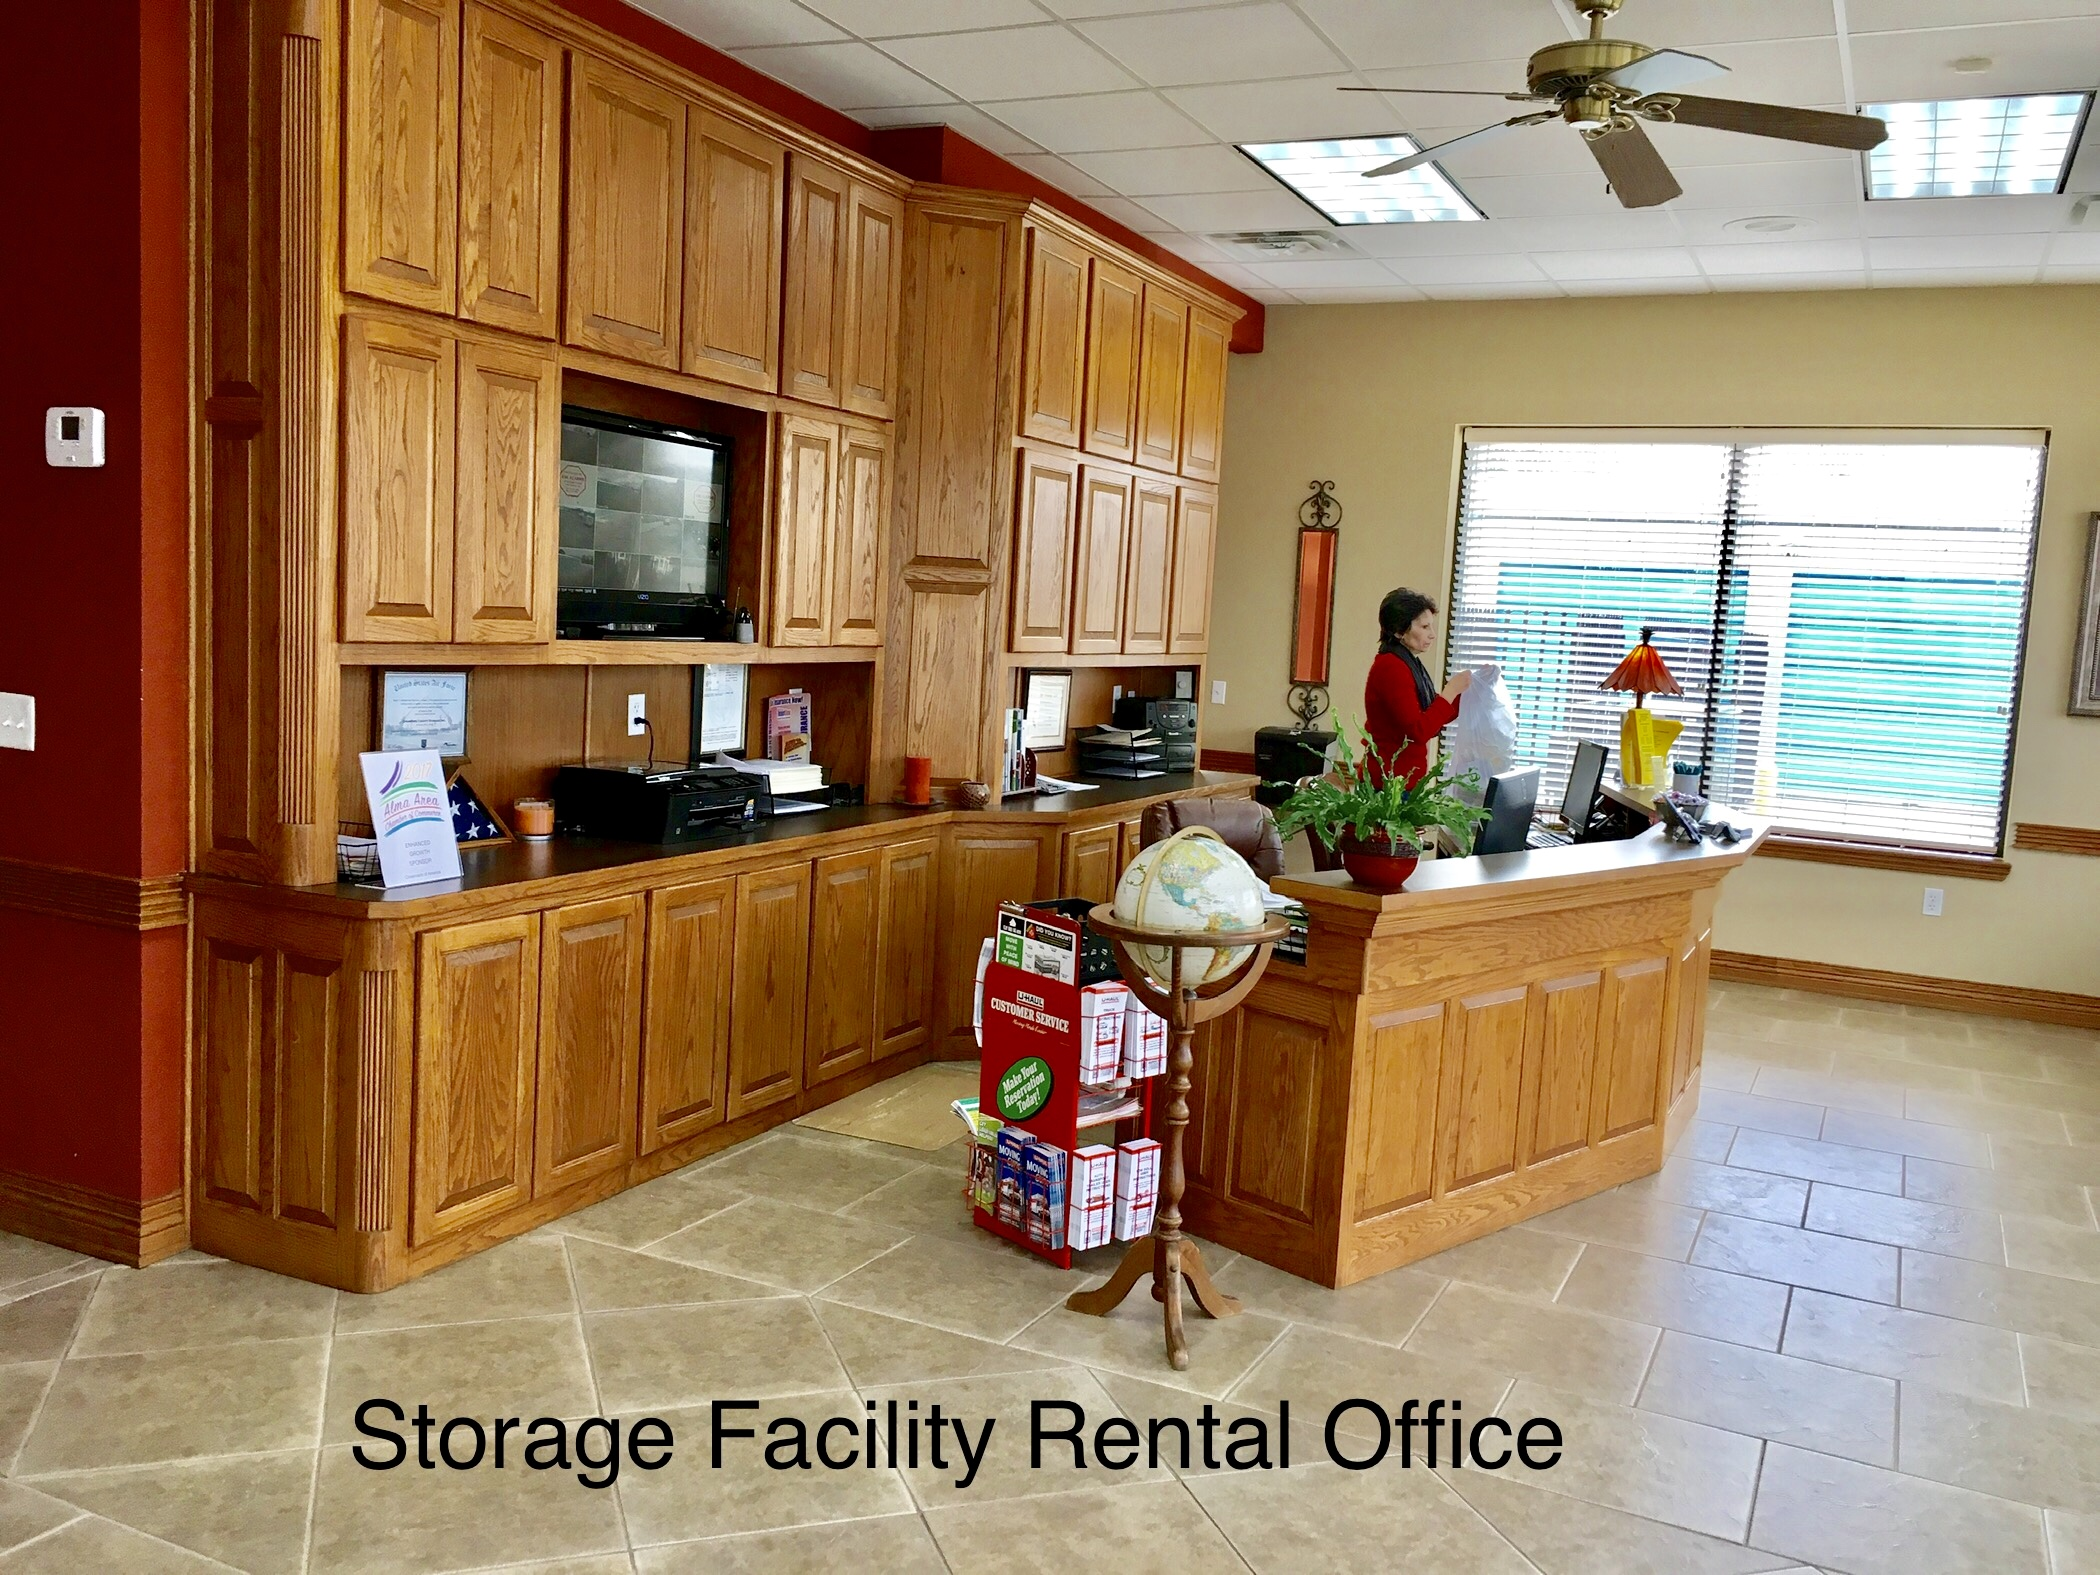 interior of storage facility rental office with manager standing behind desk